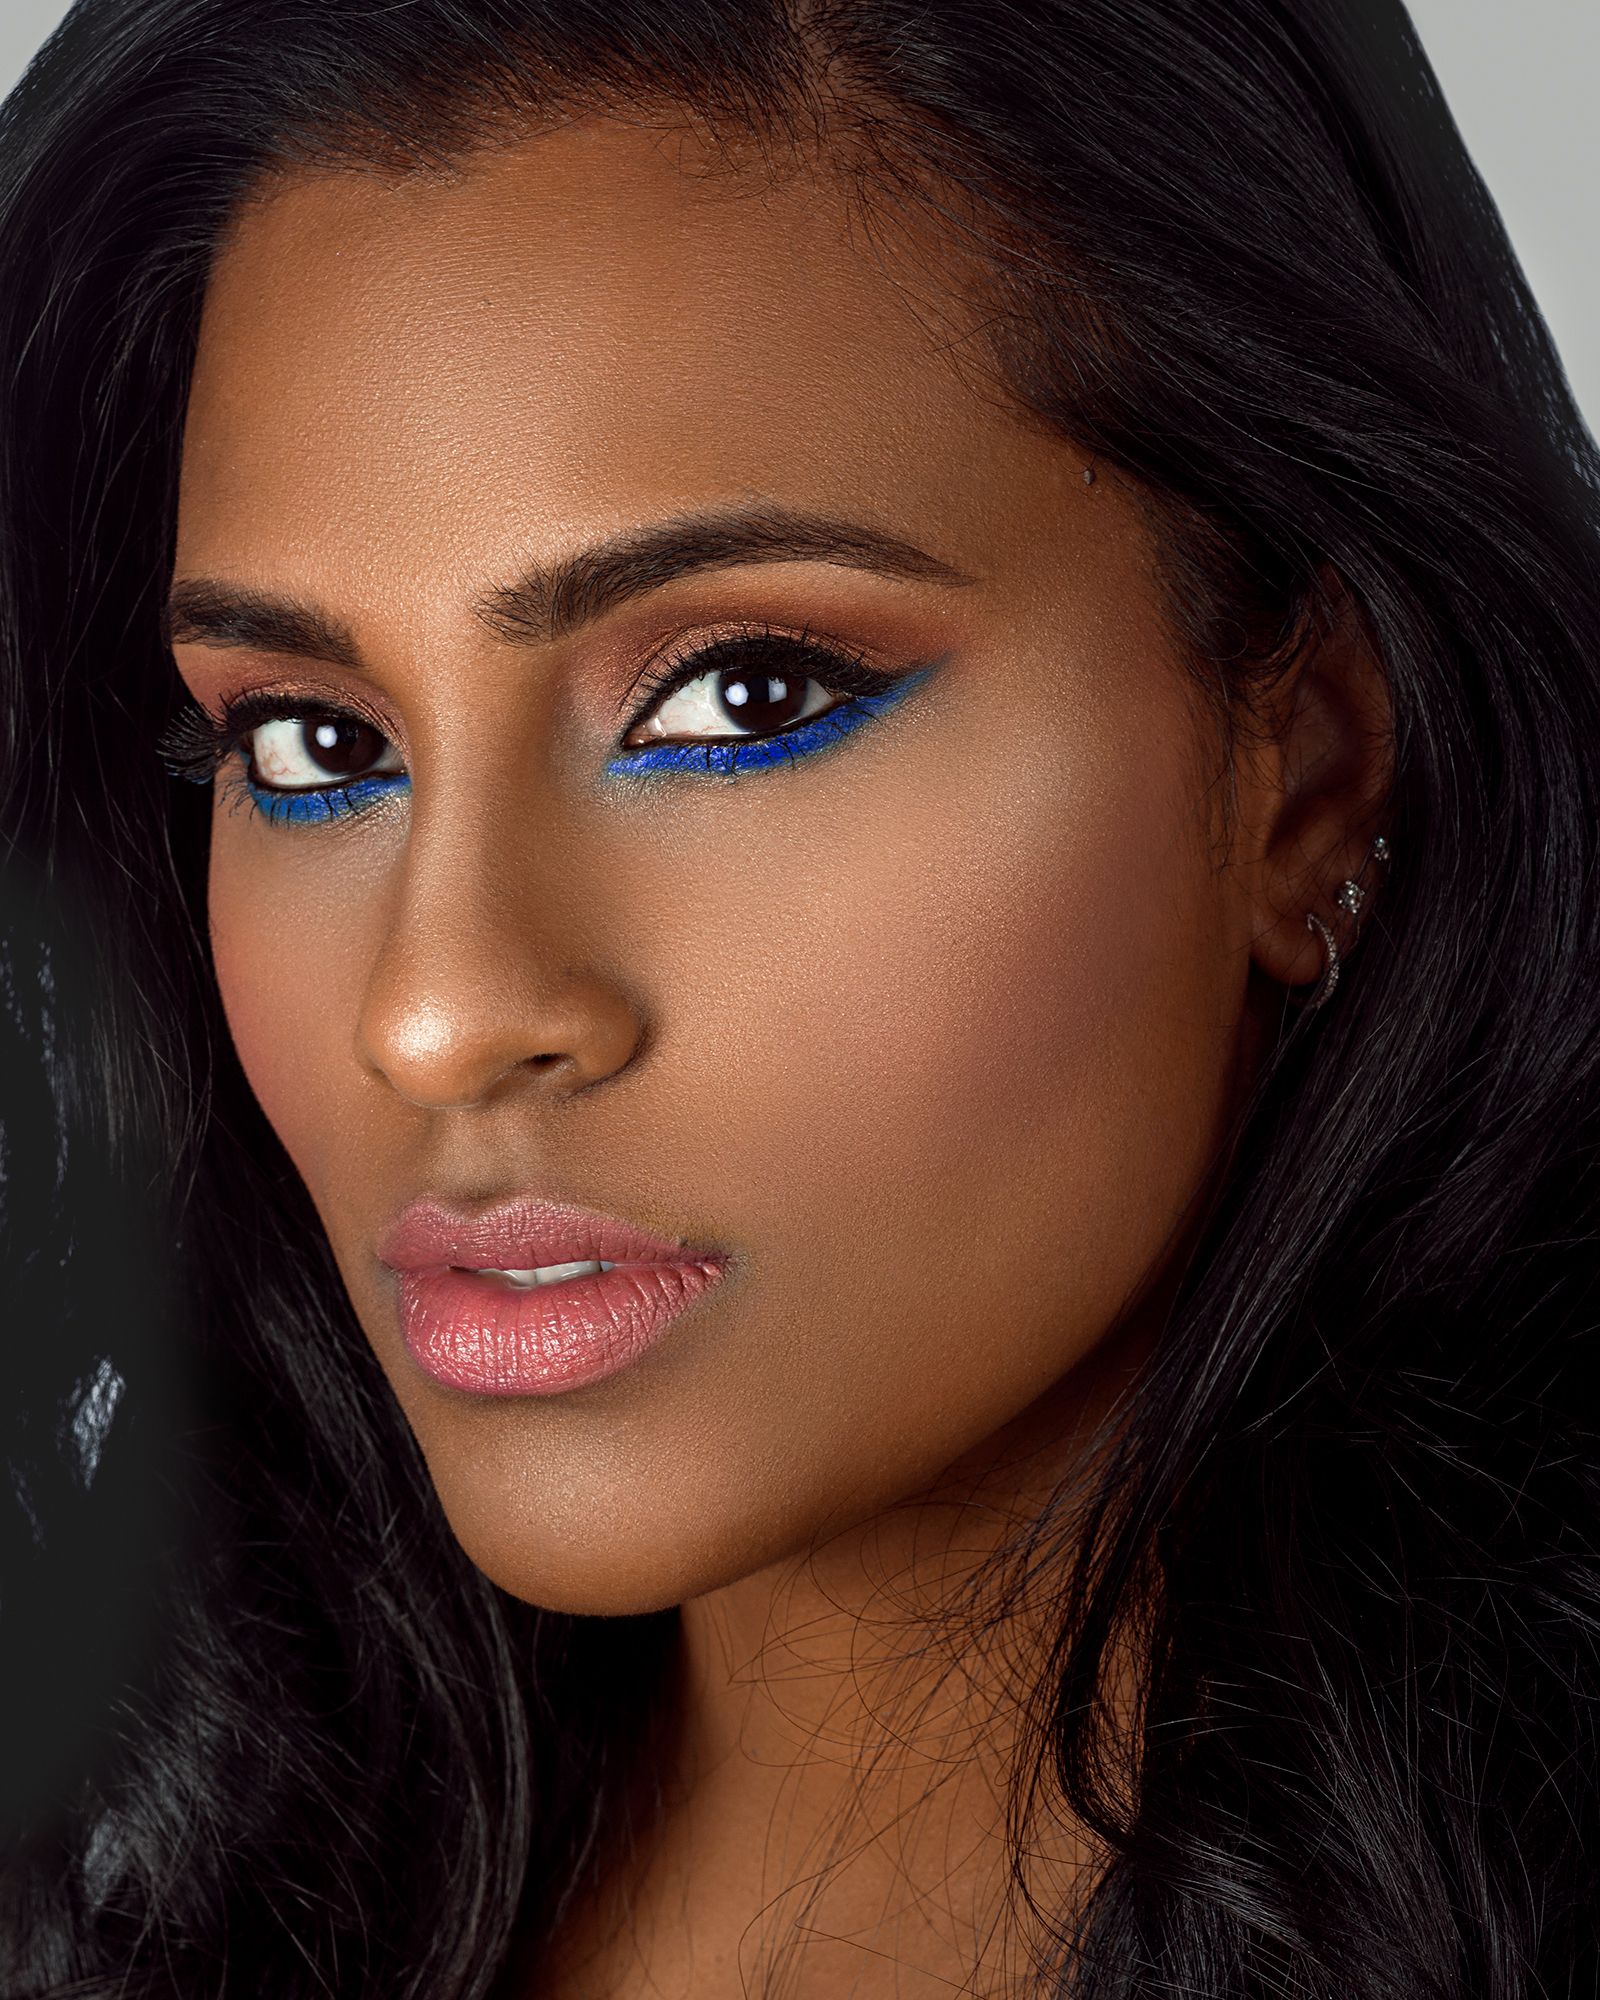 Beauty Makeup Highlighted Dewy Skin with Blue Eyeshadow by Jaynelle Lording